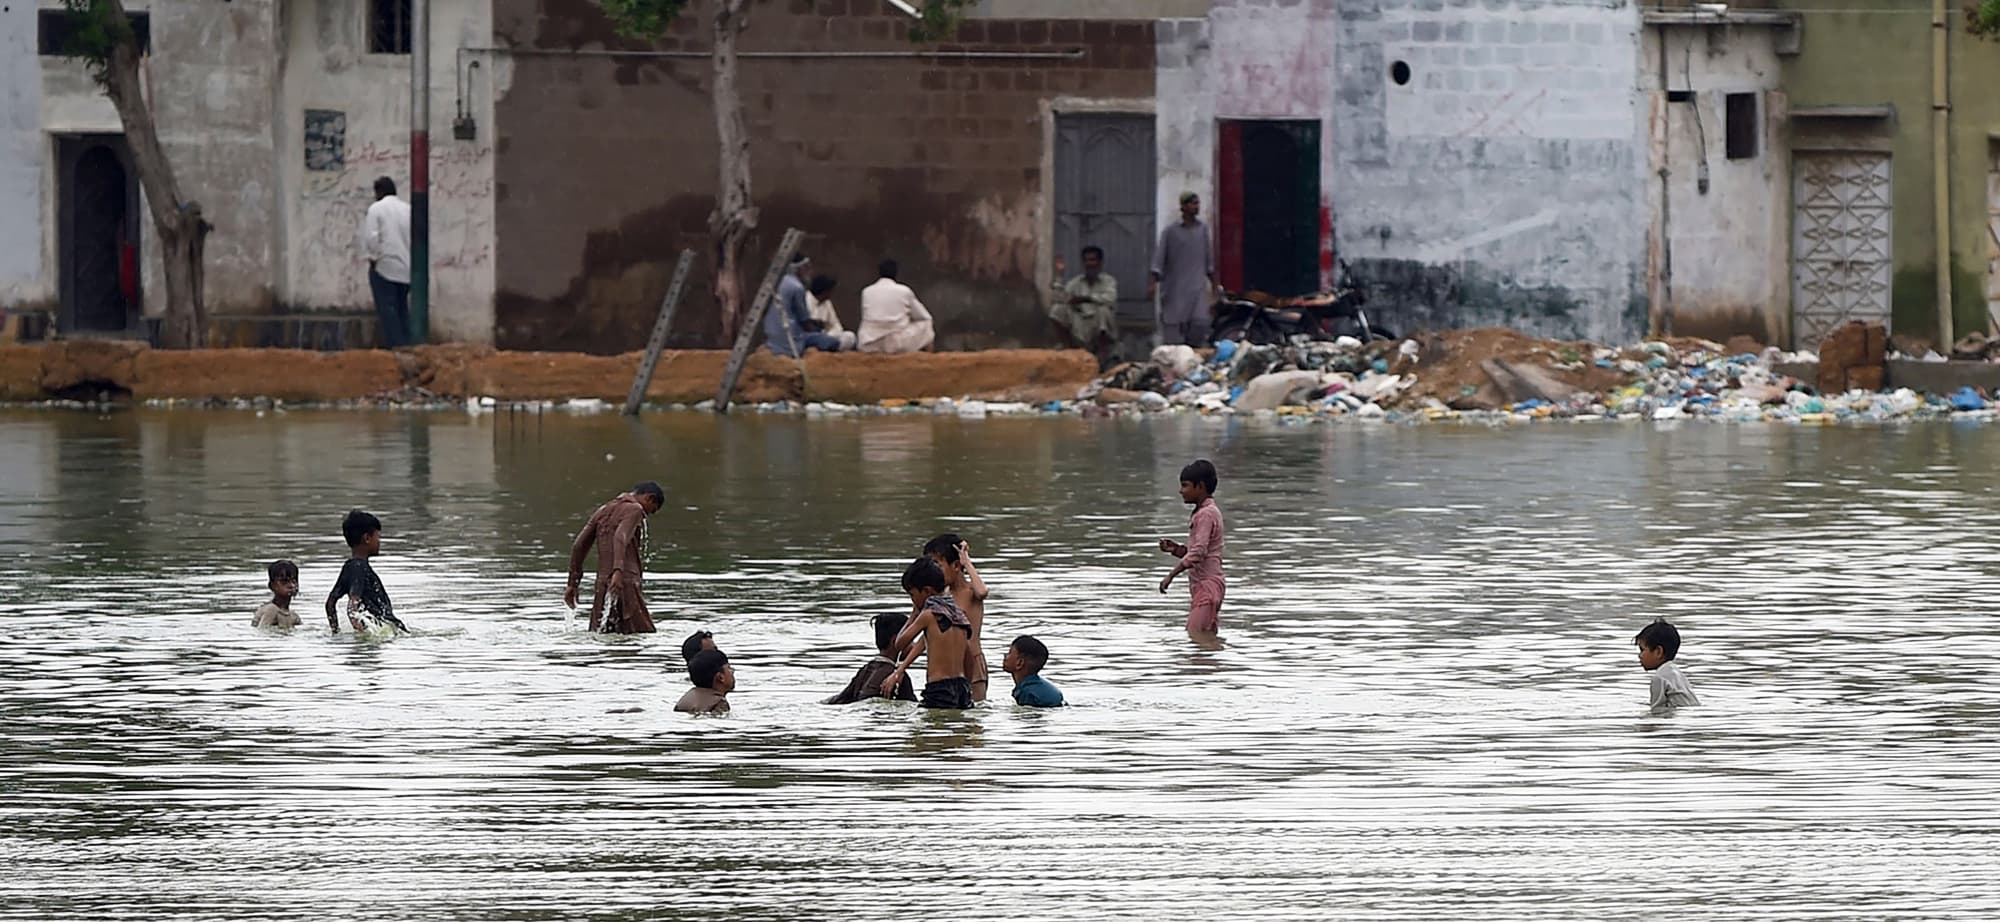 In this picture taken on September 2, 2019 children cool off in a pond of rain and waste water in Karachi. - Swarms of flies, water-borne illnesses, and rivers of sewage have brought Pakistan's Karachi to its knees this rainy season as decades of mismanagement have turned the country's commercial capital into a post-apocalyptic wasteland. (Photo by RIZWAN TABASSUM / AFP) / To go with 'PAKISTAN-HEALTH-WEATHER-FLIES,SCENE' by Ashraf KHAN — AFP or licensors